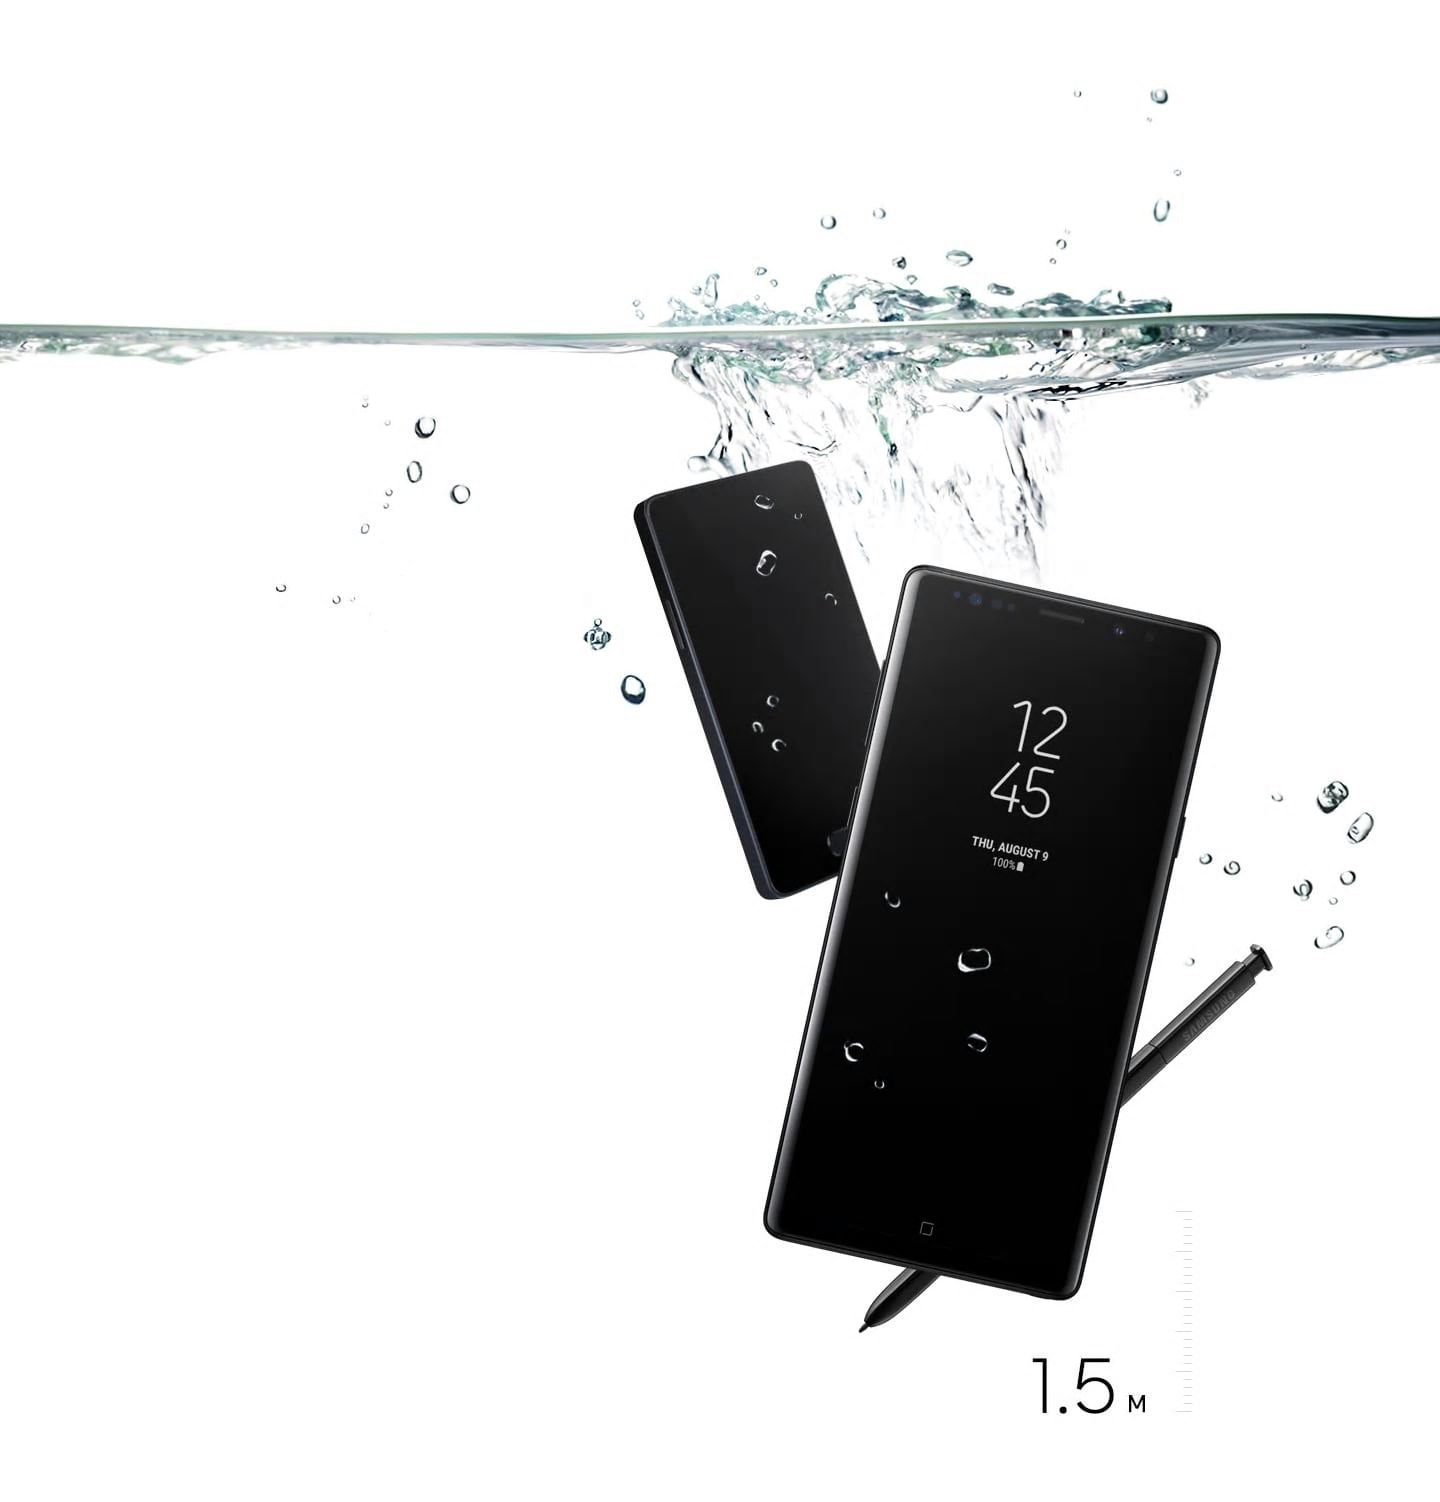 A simulated image of Galaxy Note9 and S Pen underwater up to 1.5meters with the Always On Display on, and another phone in the back with a blank screen